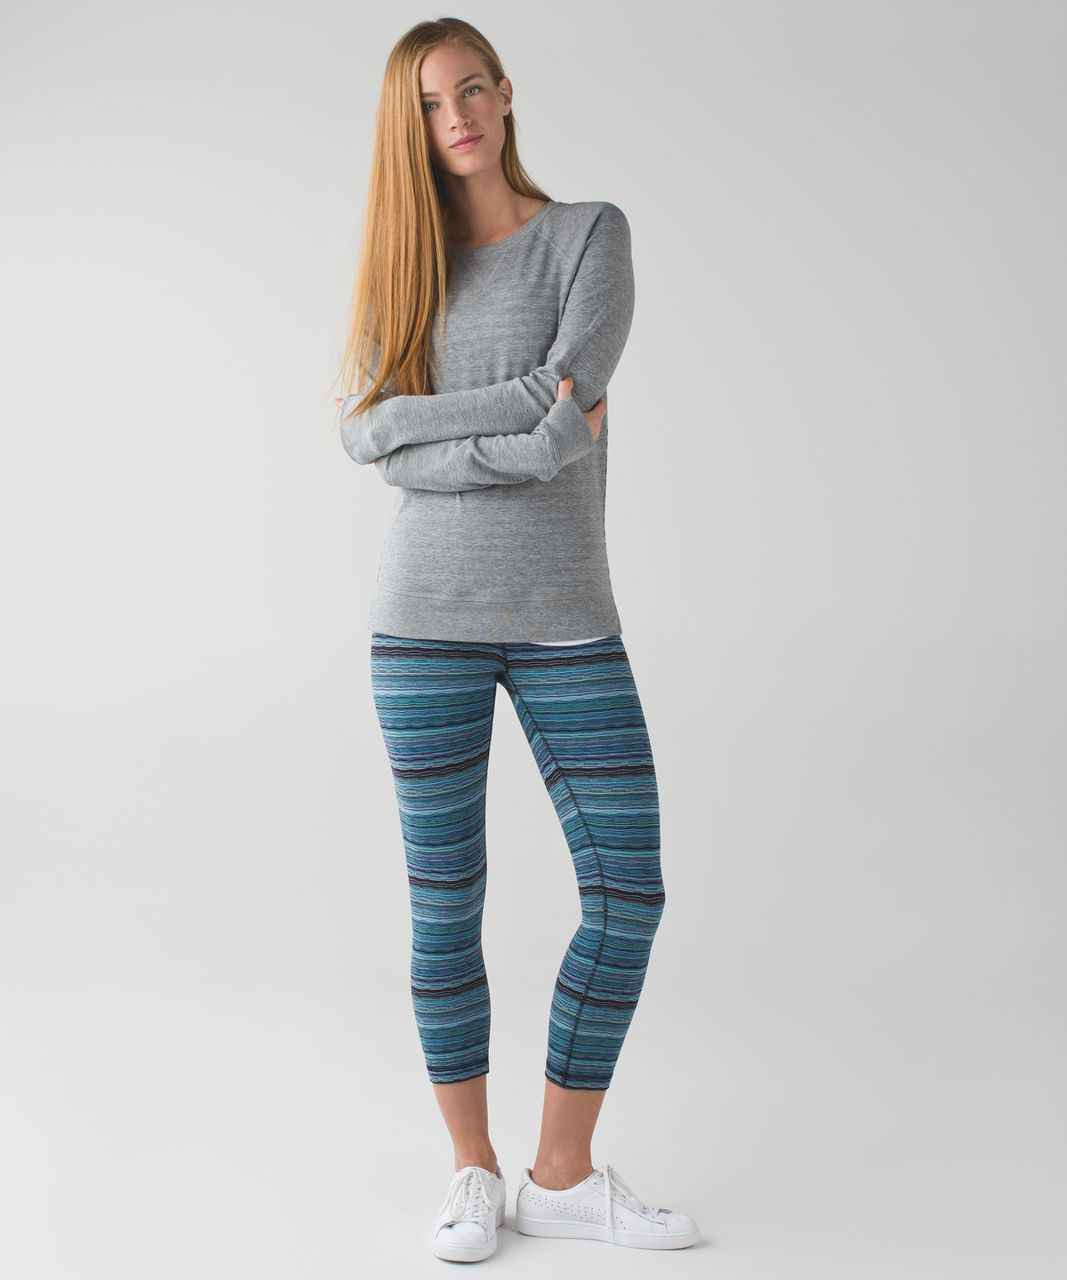 Lululemon Wunder Under Crop (Hi-Rise) - Space Dye Twist Naval Blue Peacock Blue